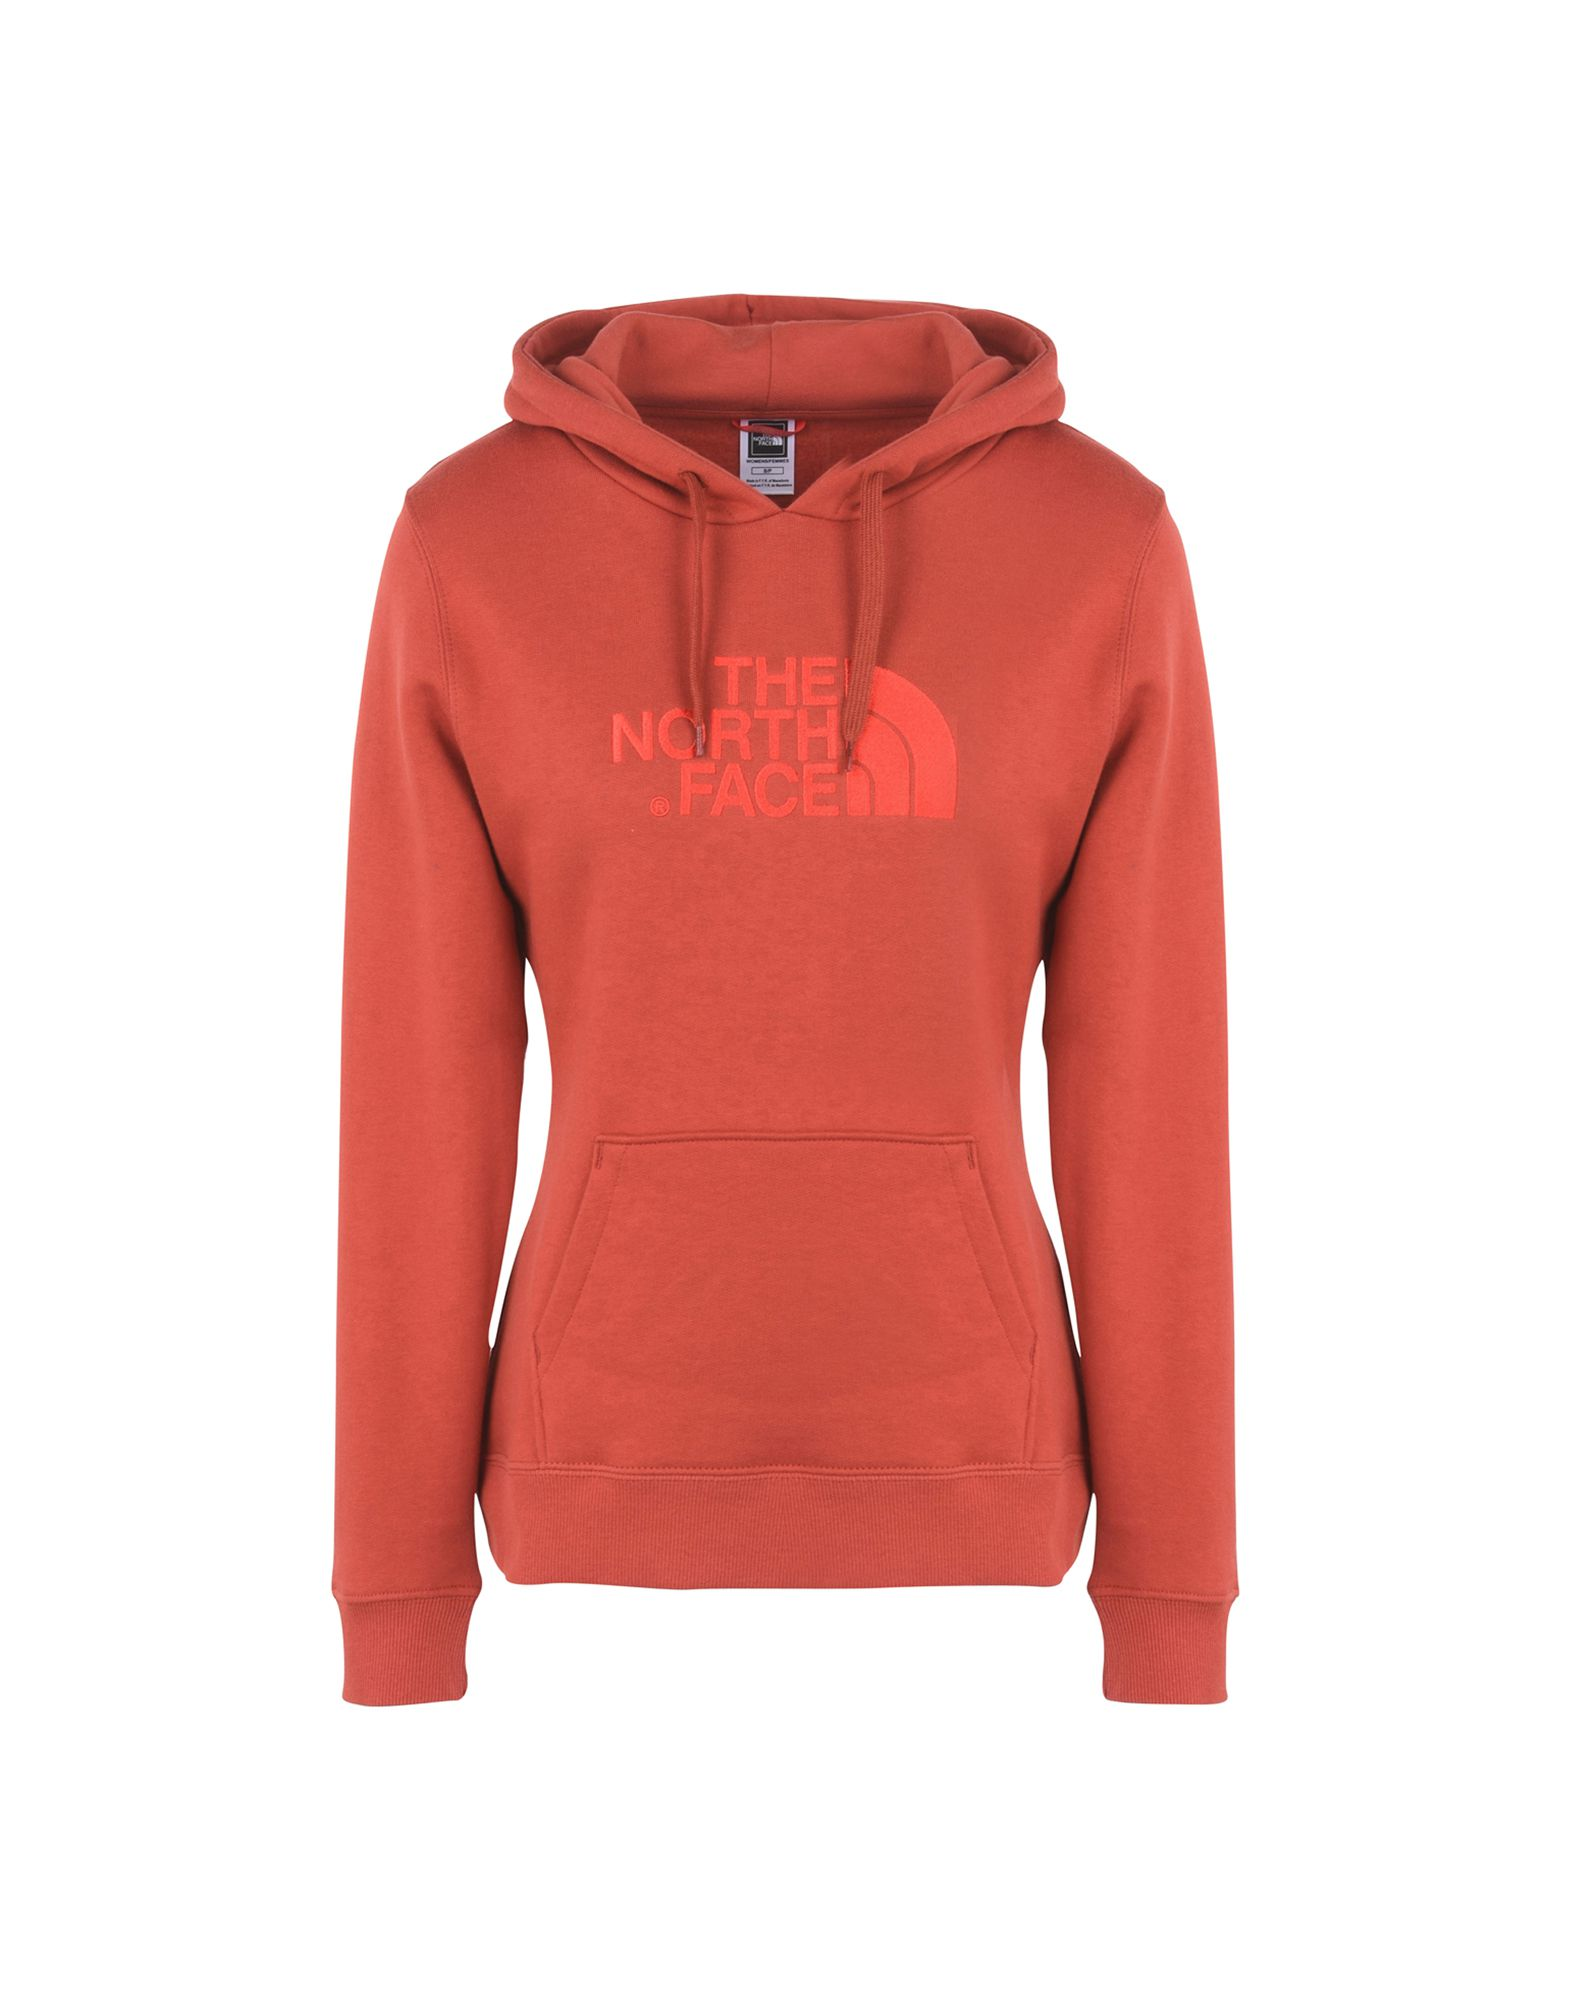 THE NORTH FACE Толстовка the north face ski tuke iv os t0a6w6